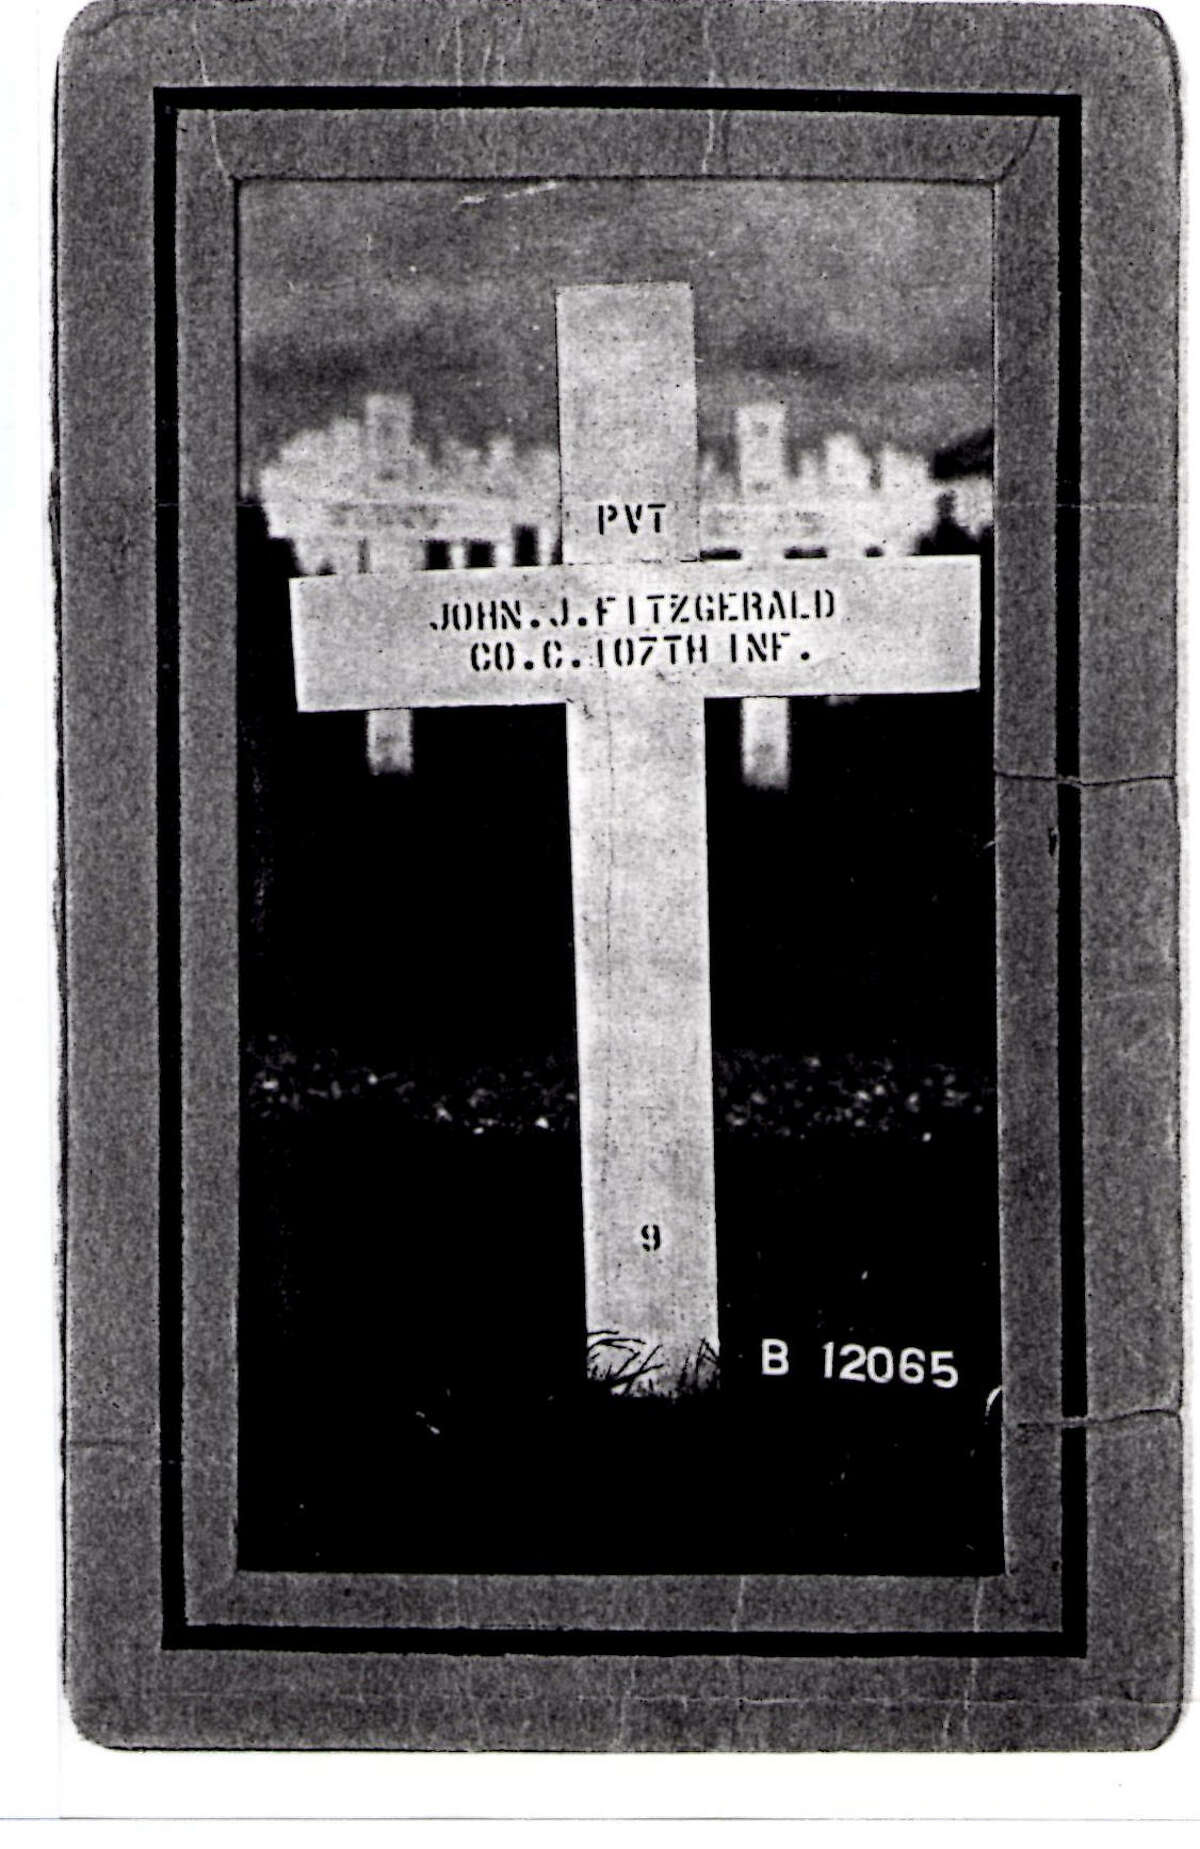 John (Jack) Fitzgerald was killed in France and buried in St. Agnes Cemetery.